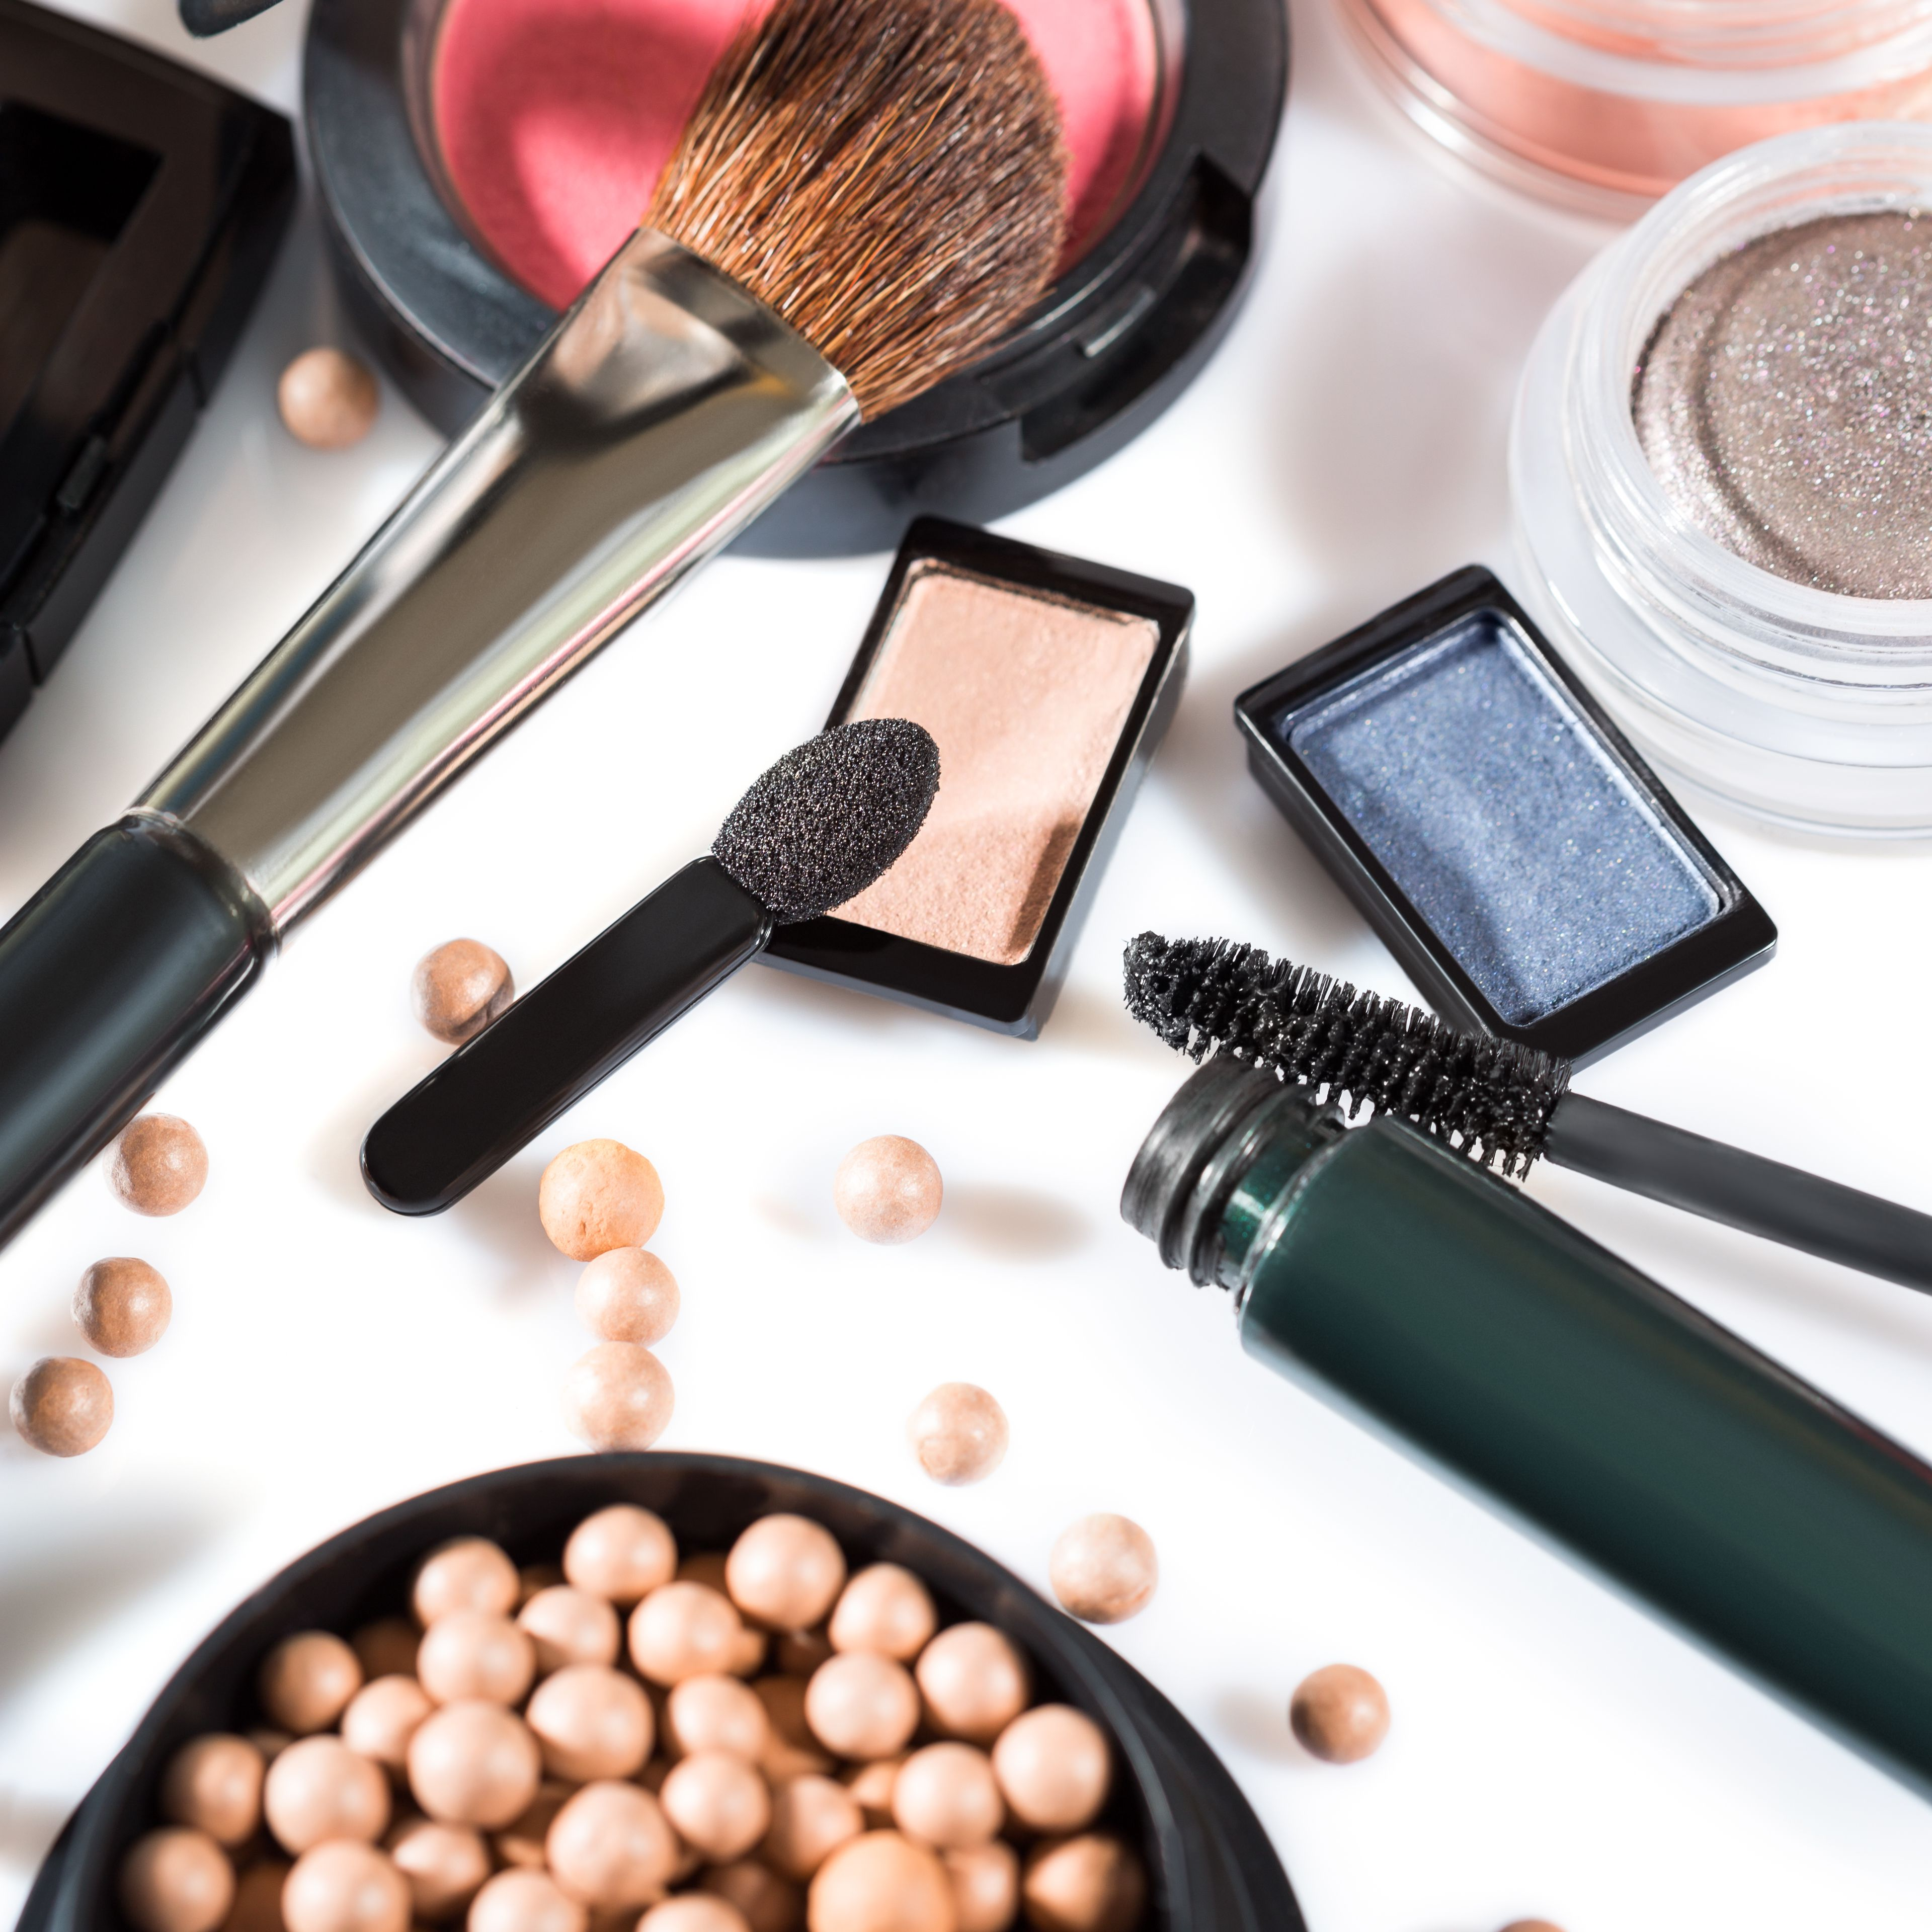 The 7 Best Makeup Websites For